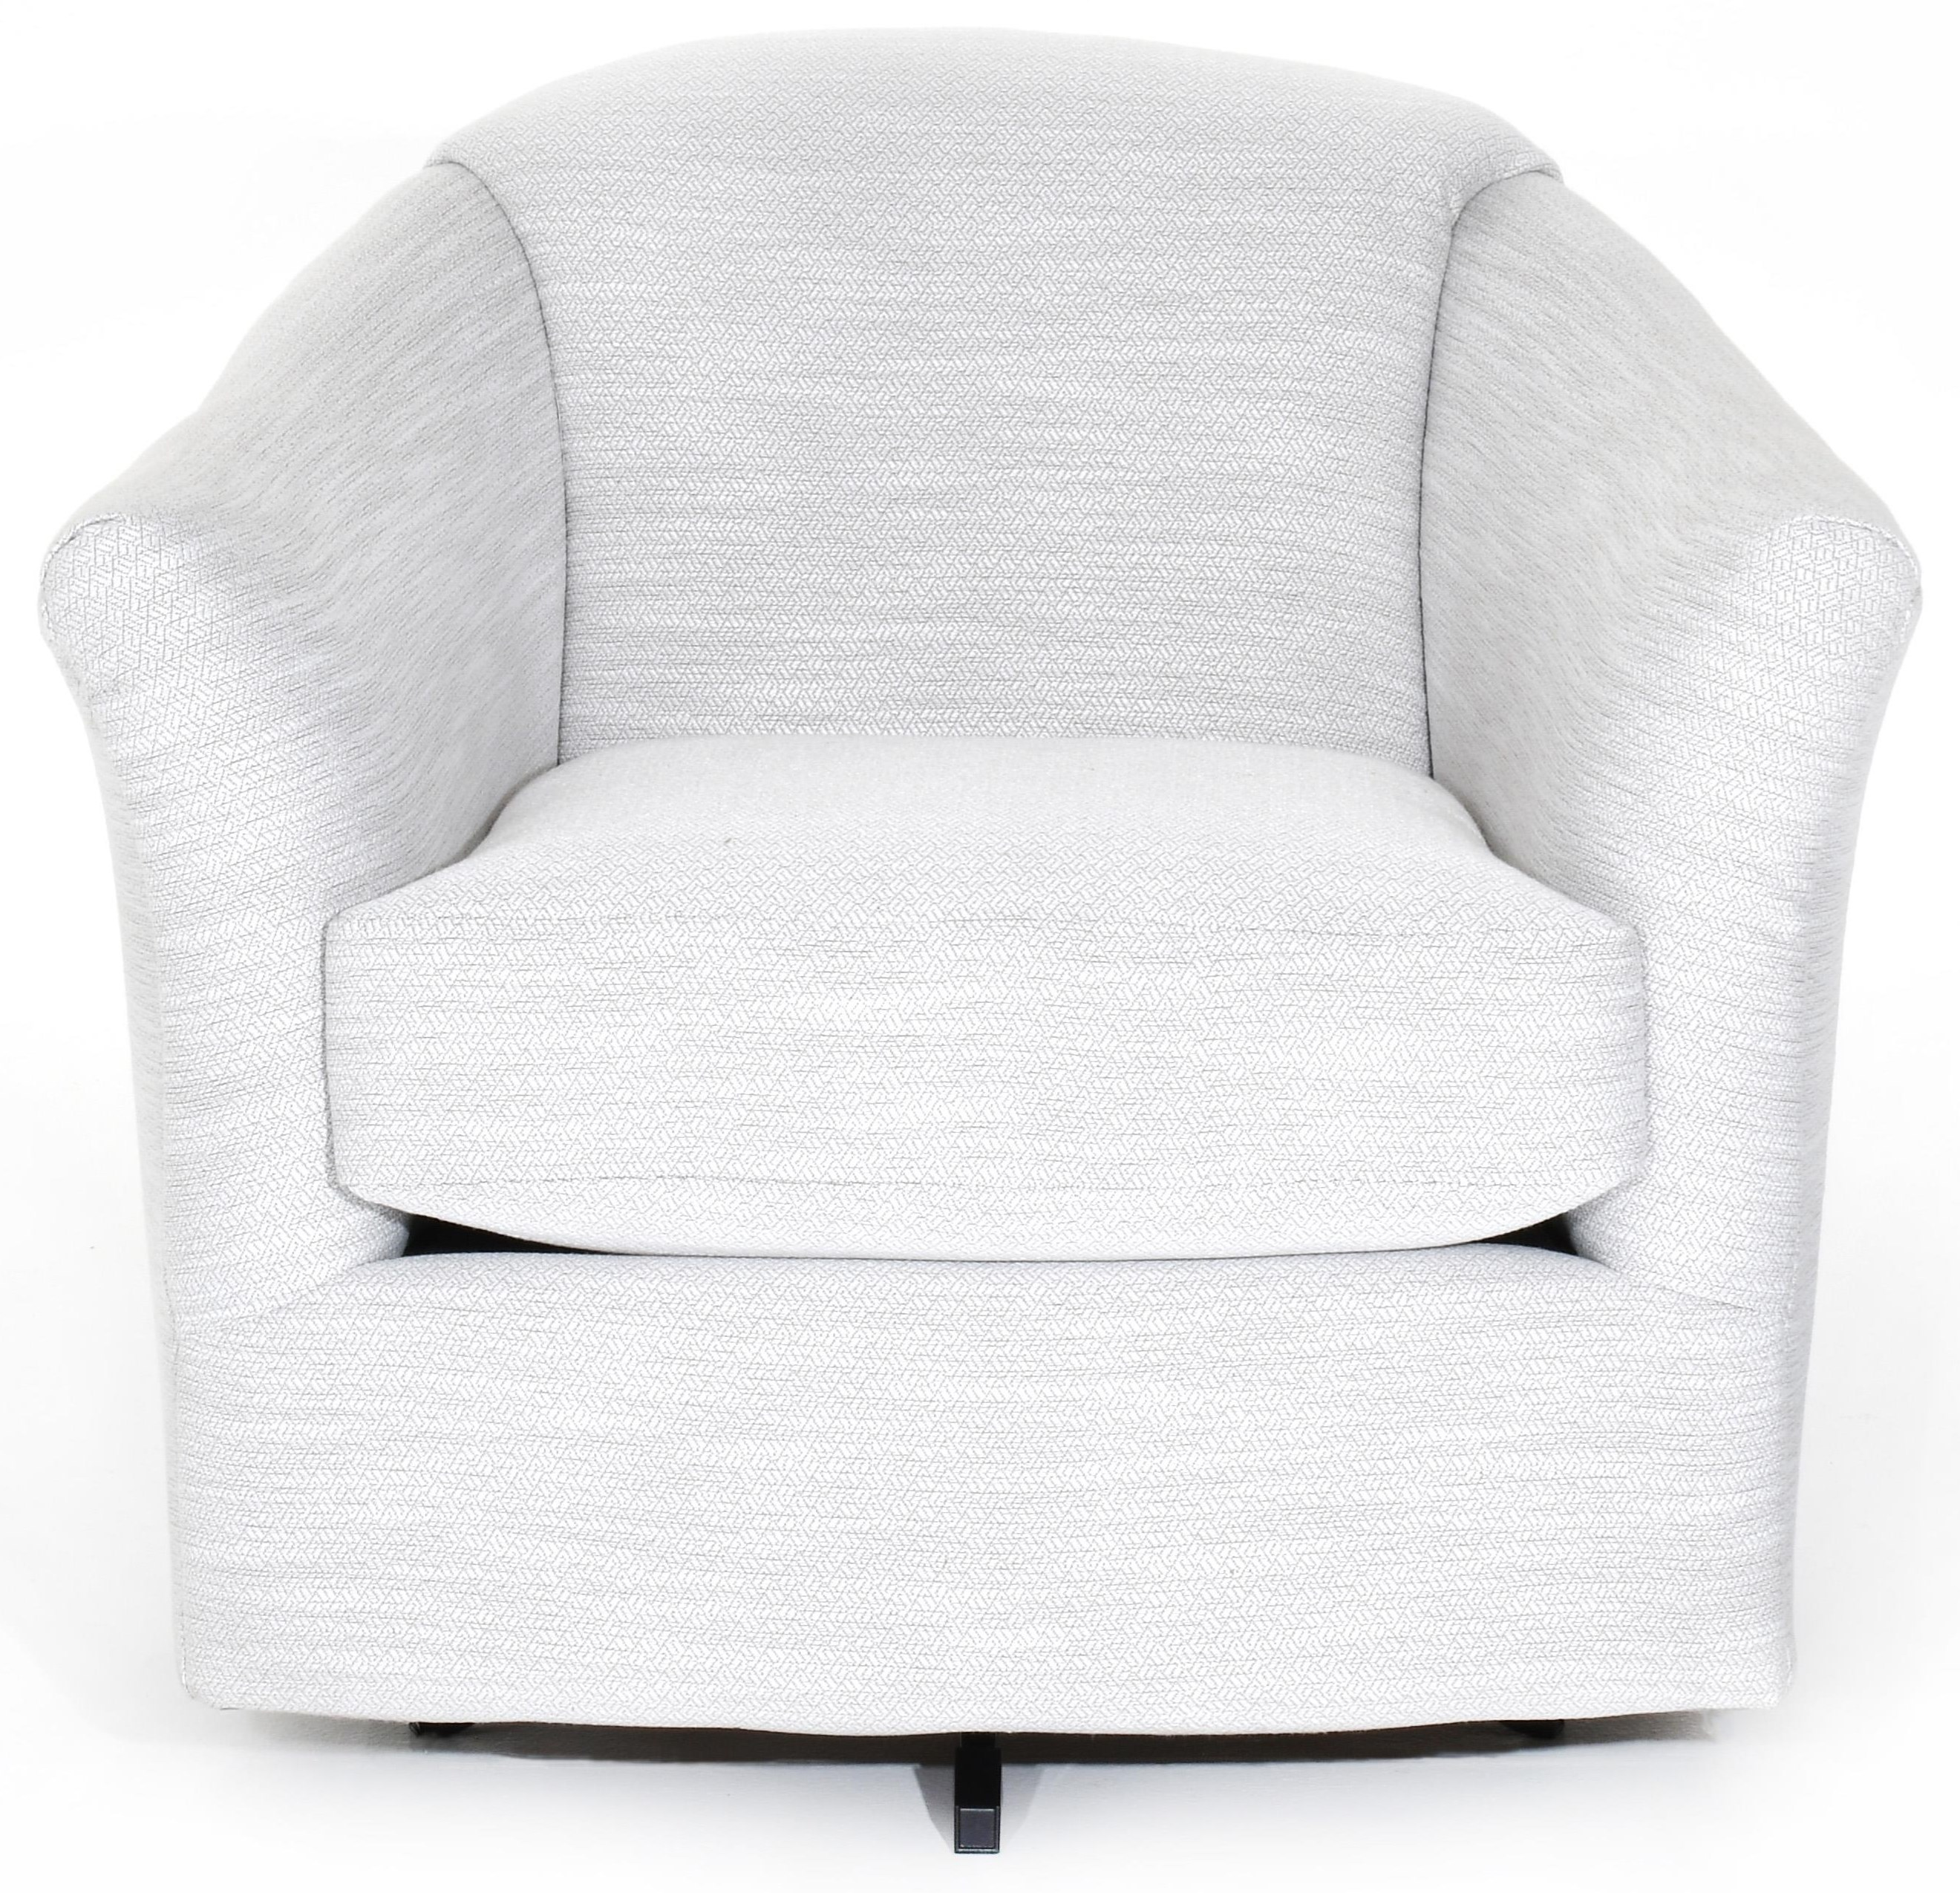 Best Home Furnishings Swivel Glide Chairs Swivel Chair - Item Number: 2878 21517